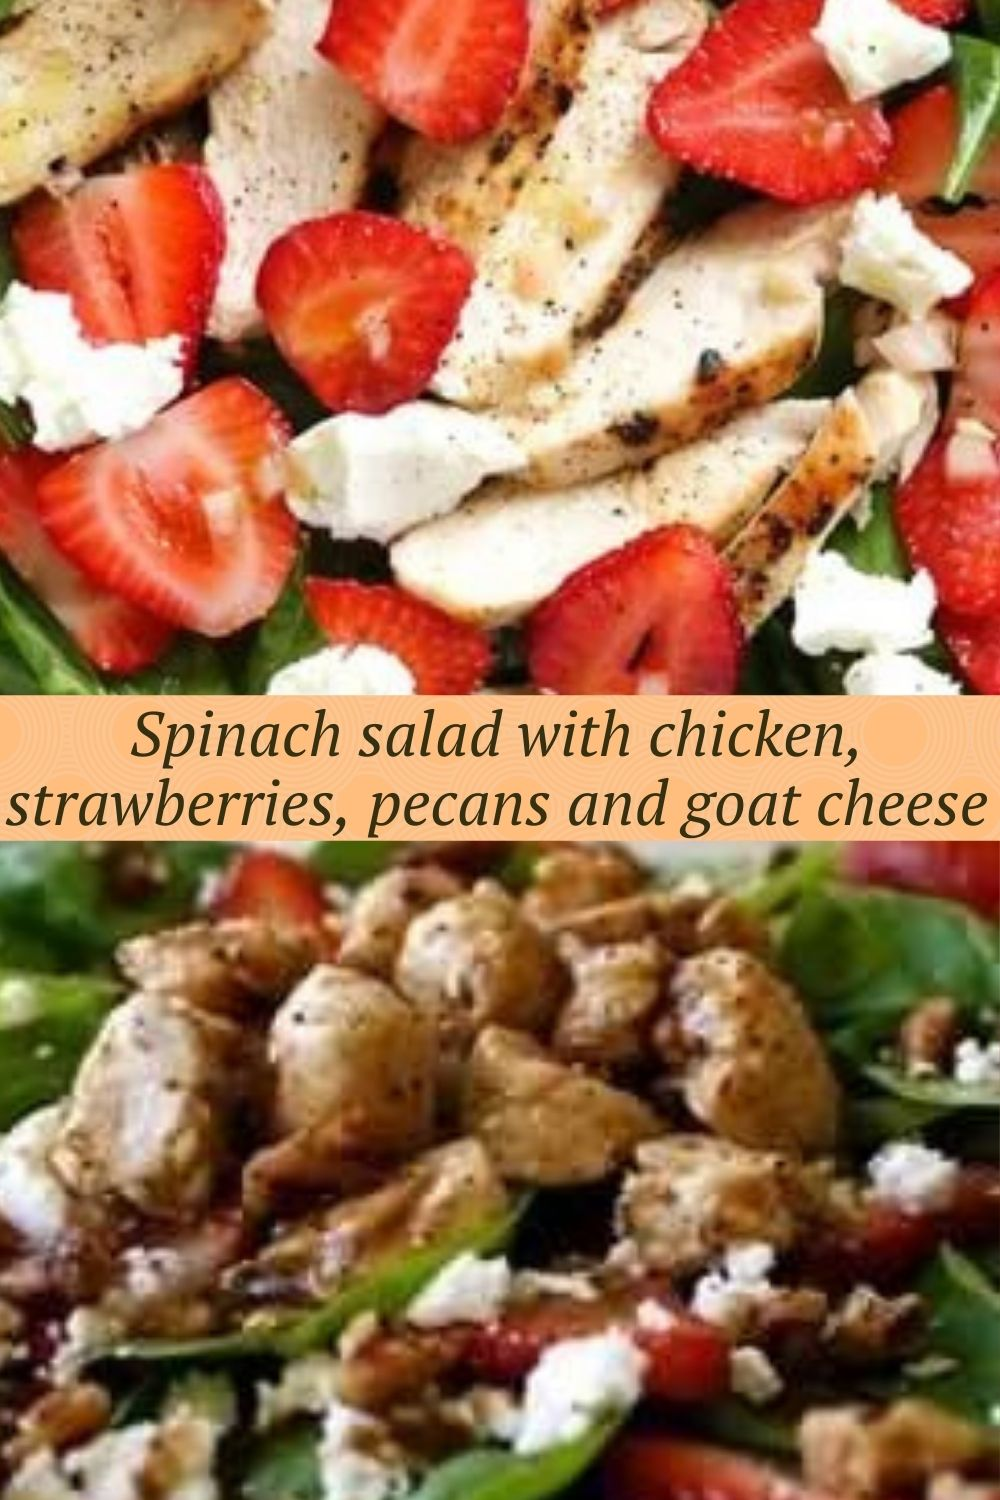 Spinach salad with chicken, strawberries, pecans and goat cheese